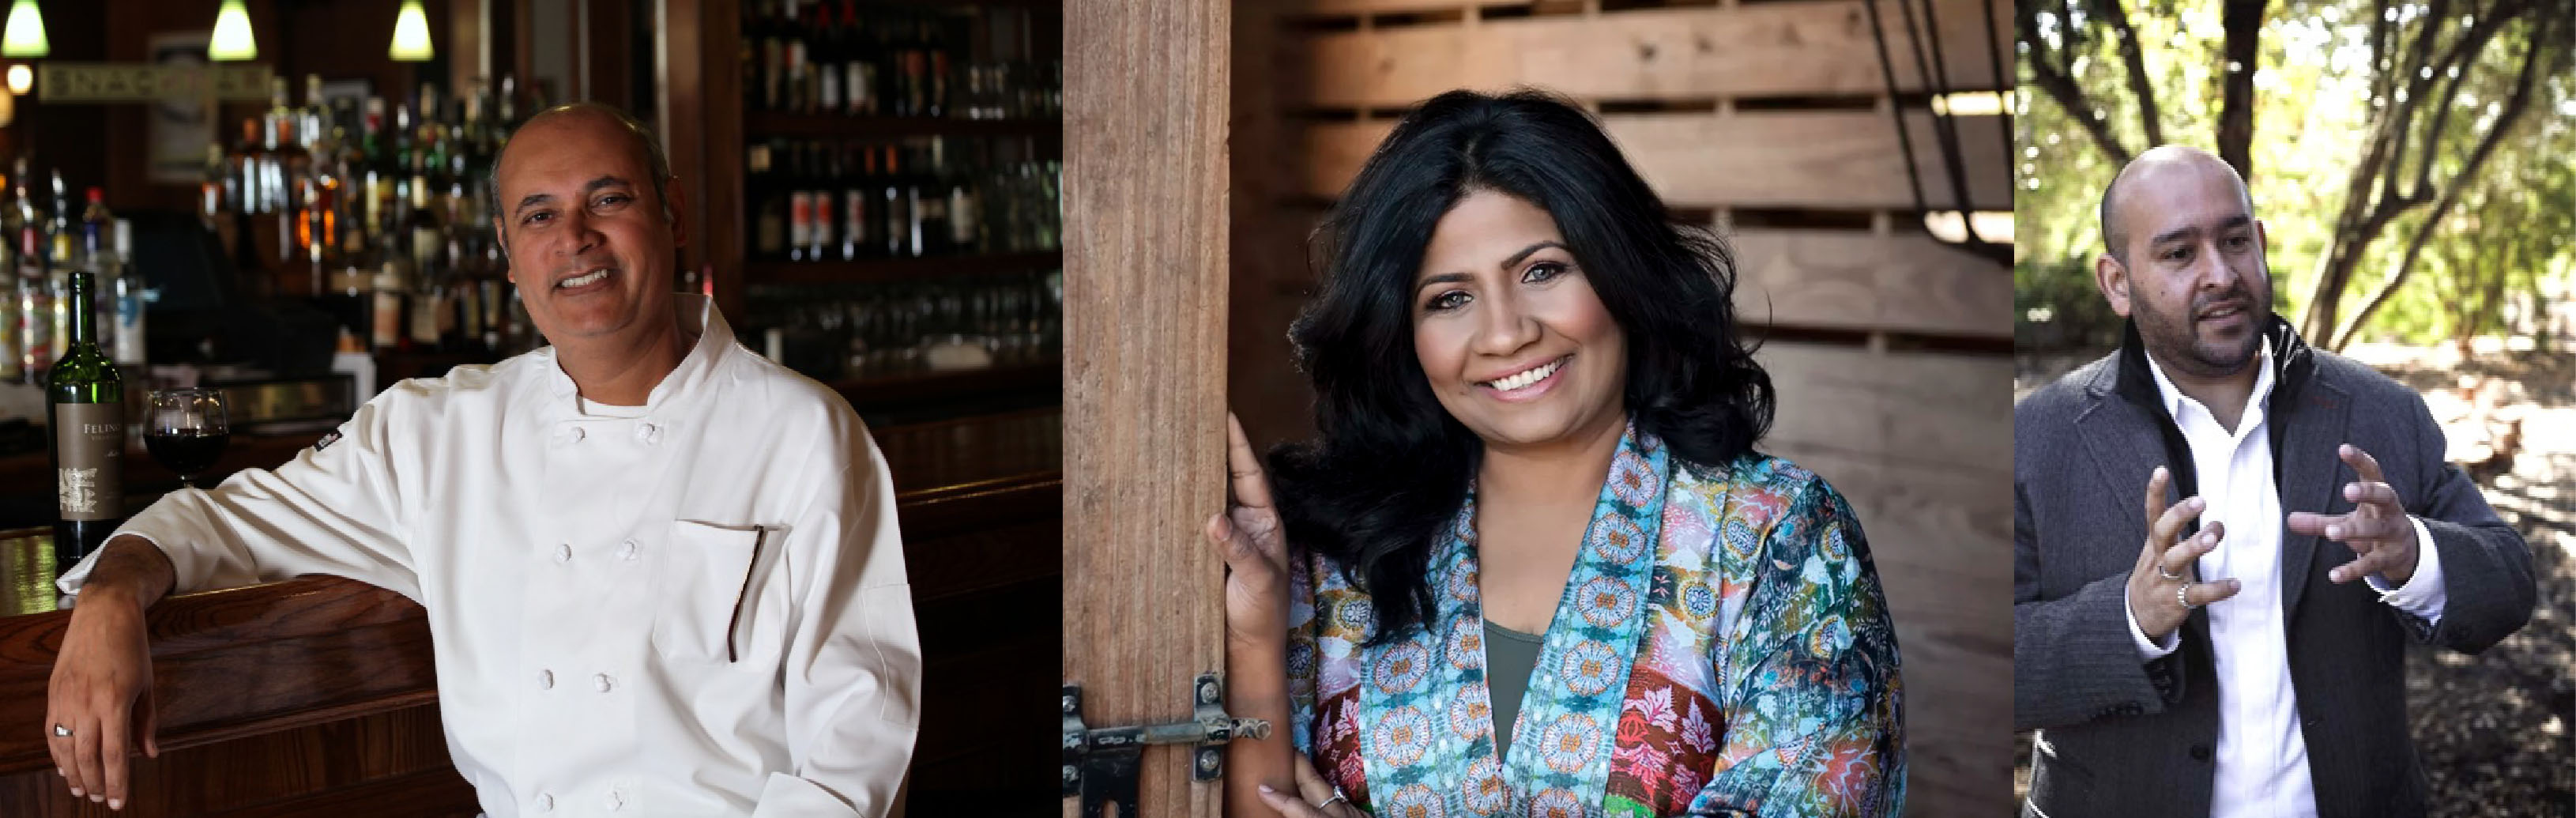 (Left to Right) Chef Vishwesh Bhatt, Chef Asha Gomez & Sommelier Rajat Parr, the three Indian Americans nominated for the 2017 James Beard Award